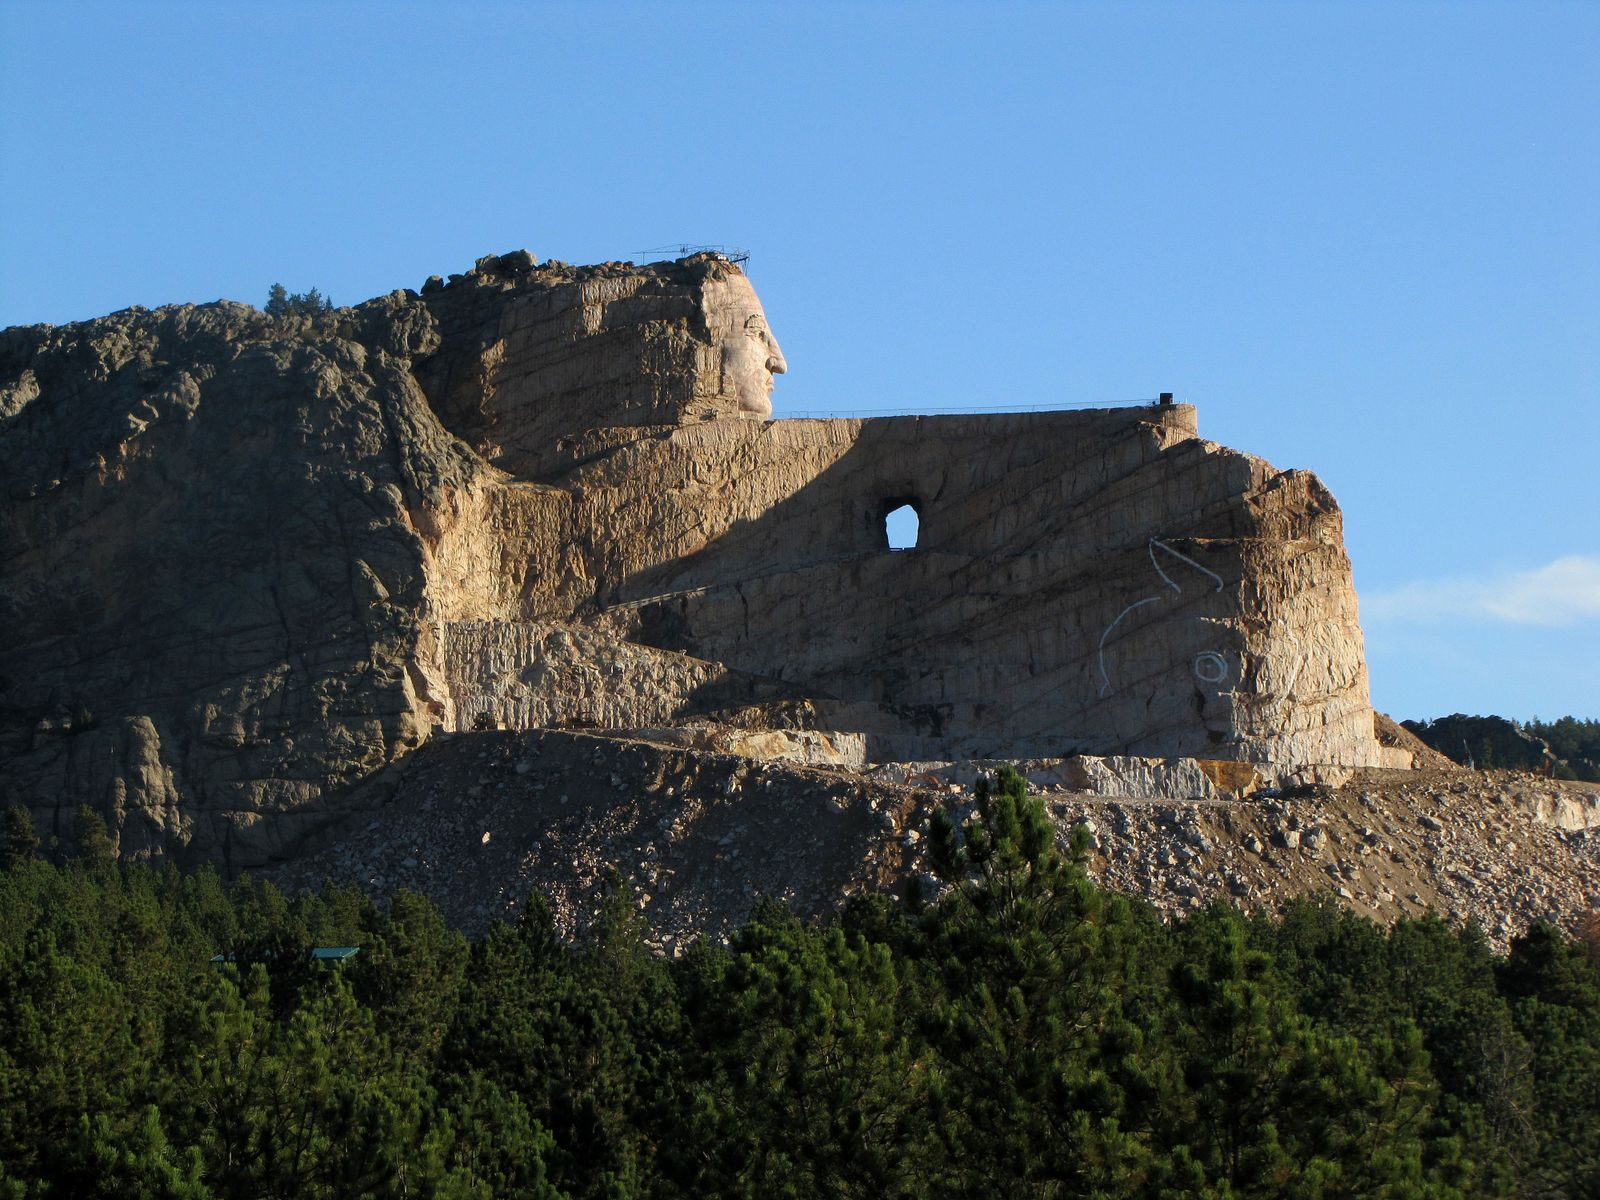 Wanderer's Ramblings: The American West Part 8: In the Black Hills ...